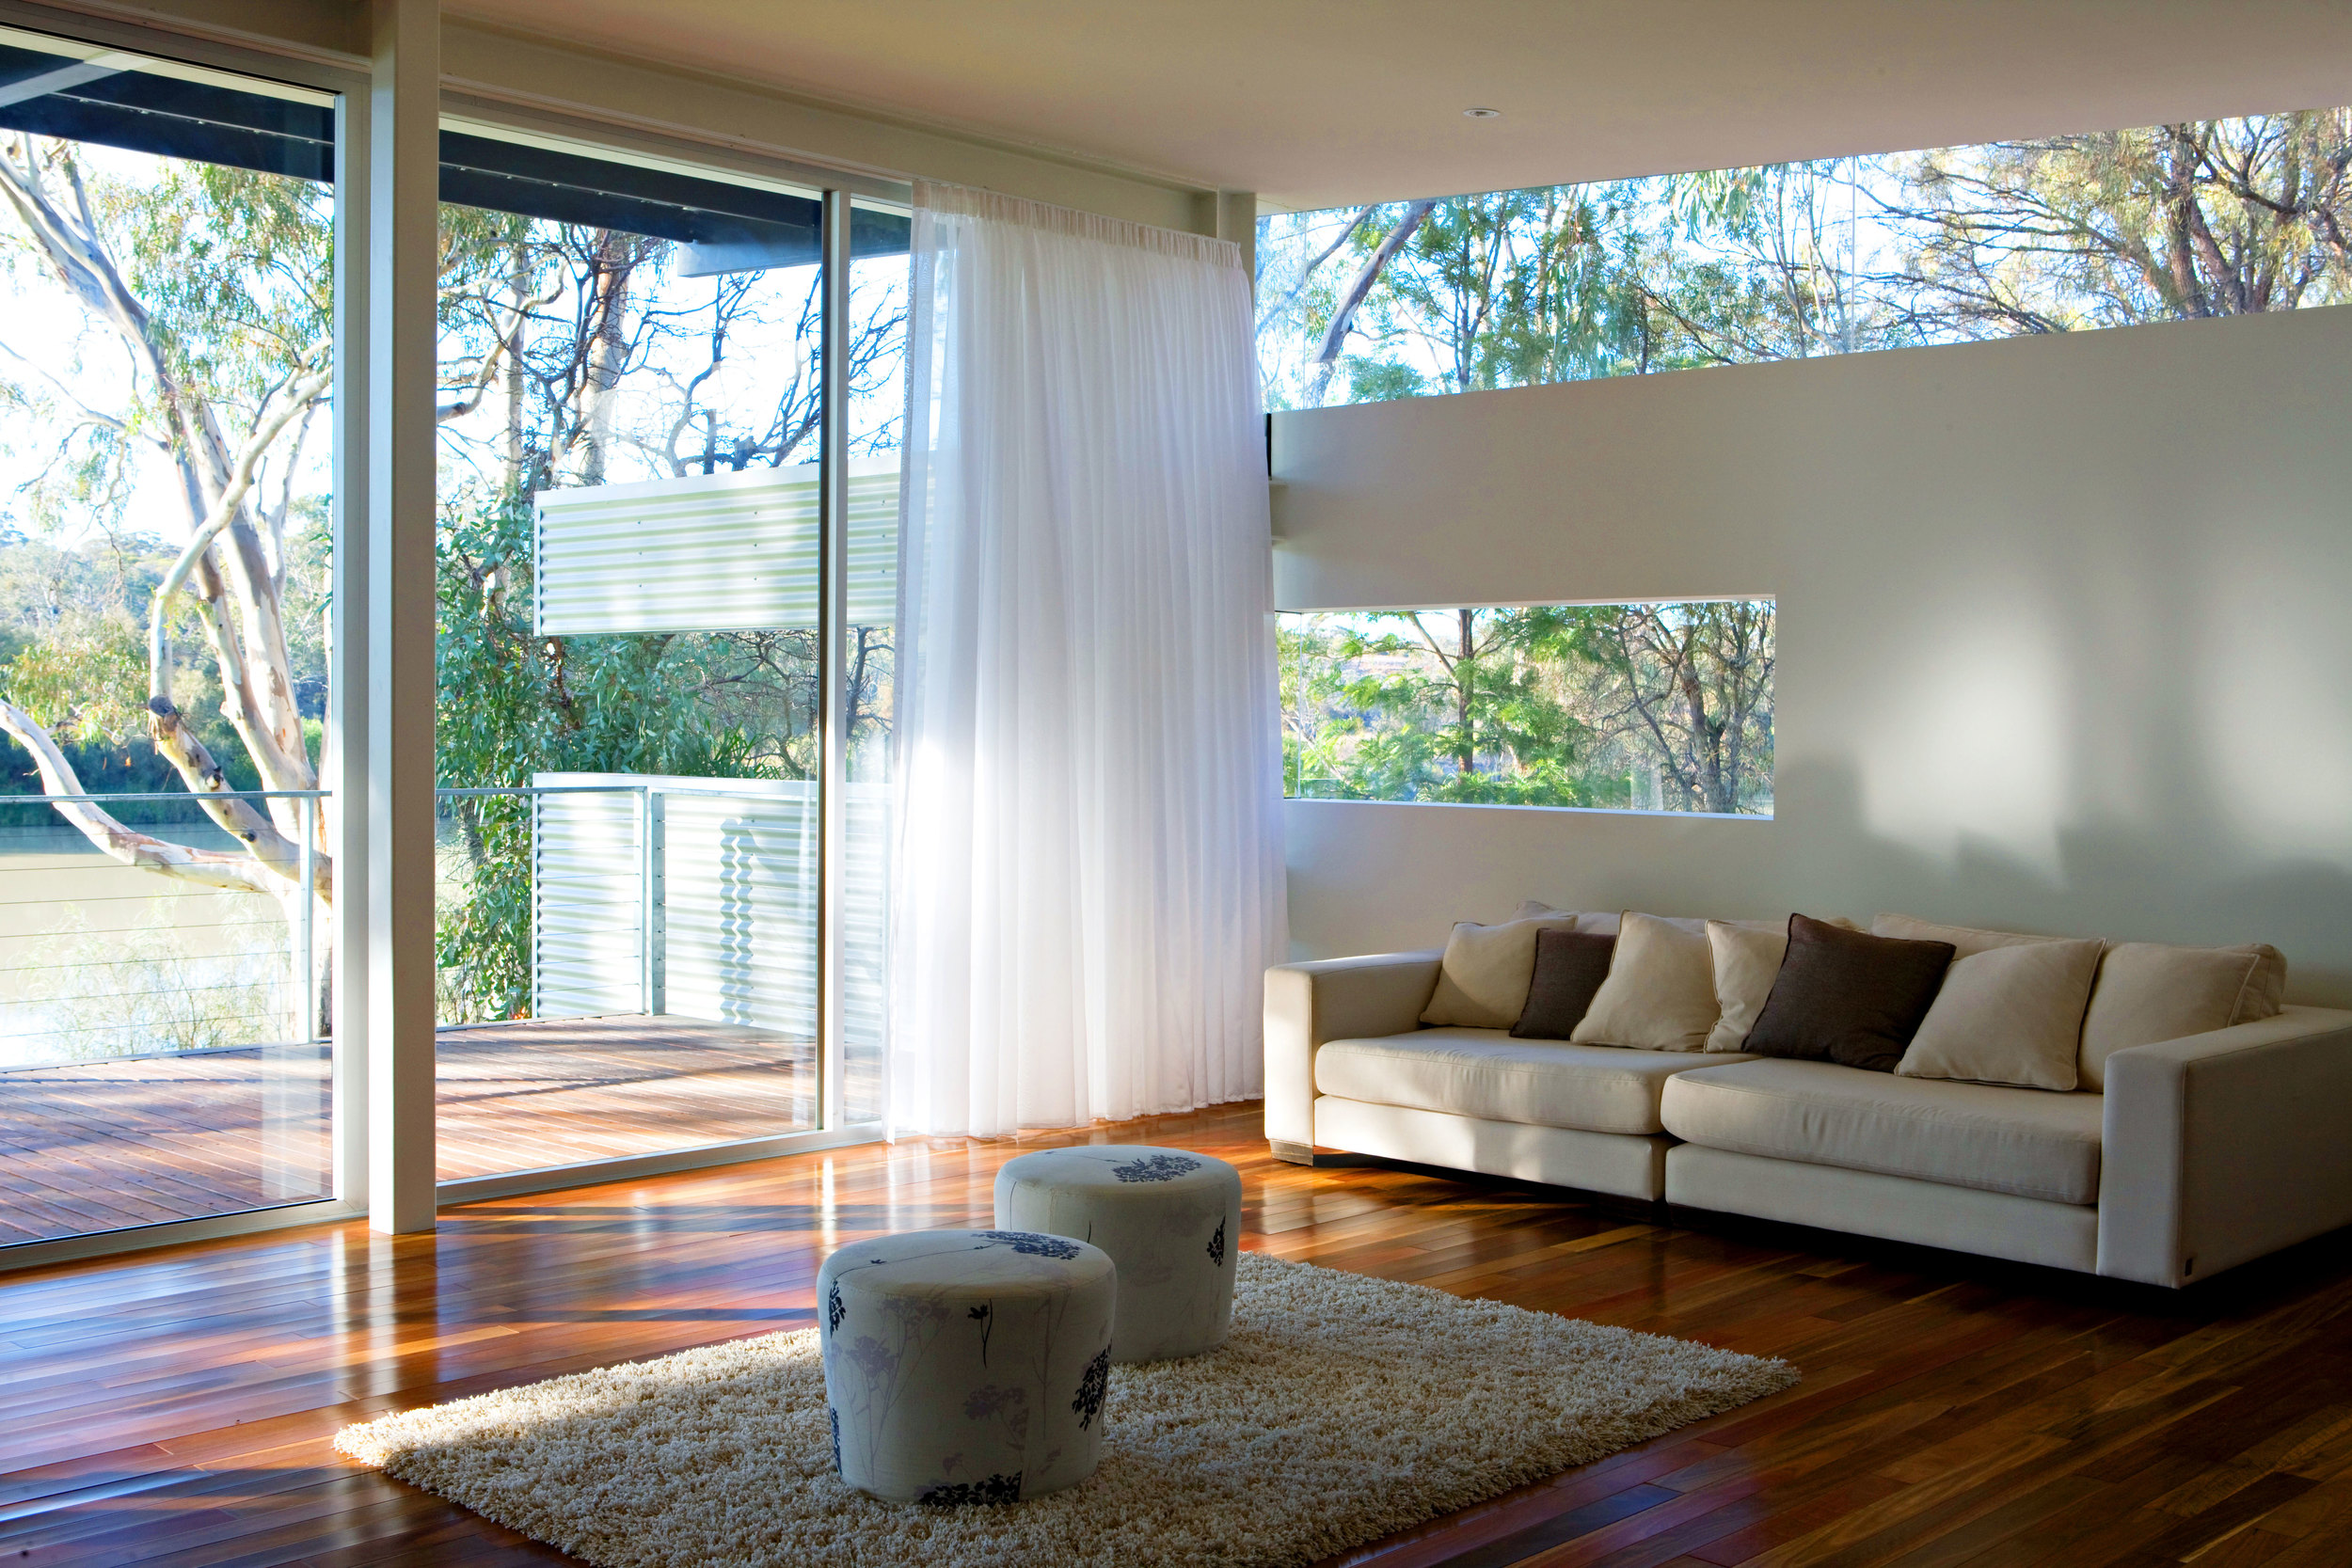 Living spaces provide a comfortable retreat from the sun